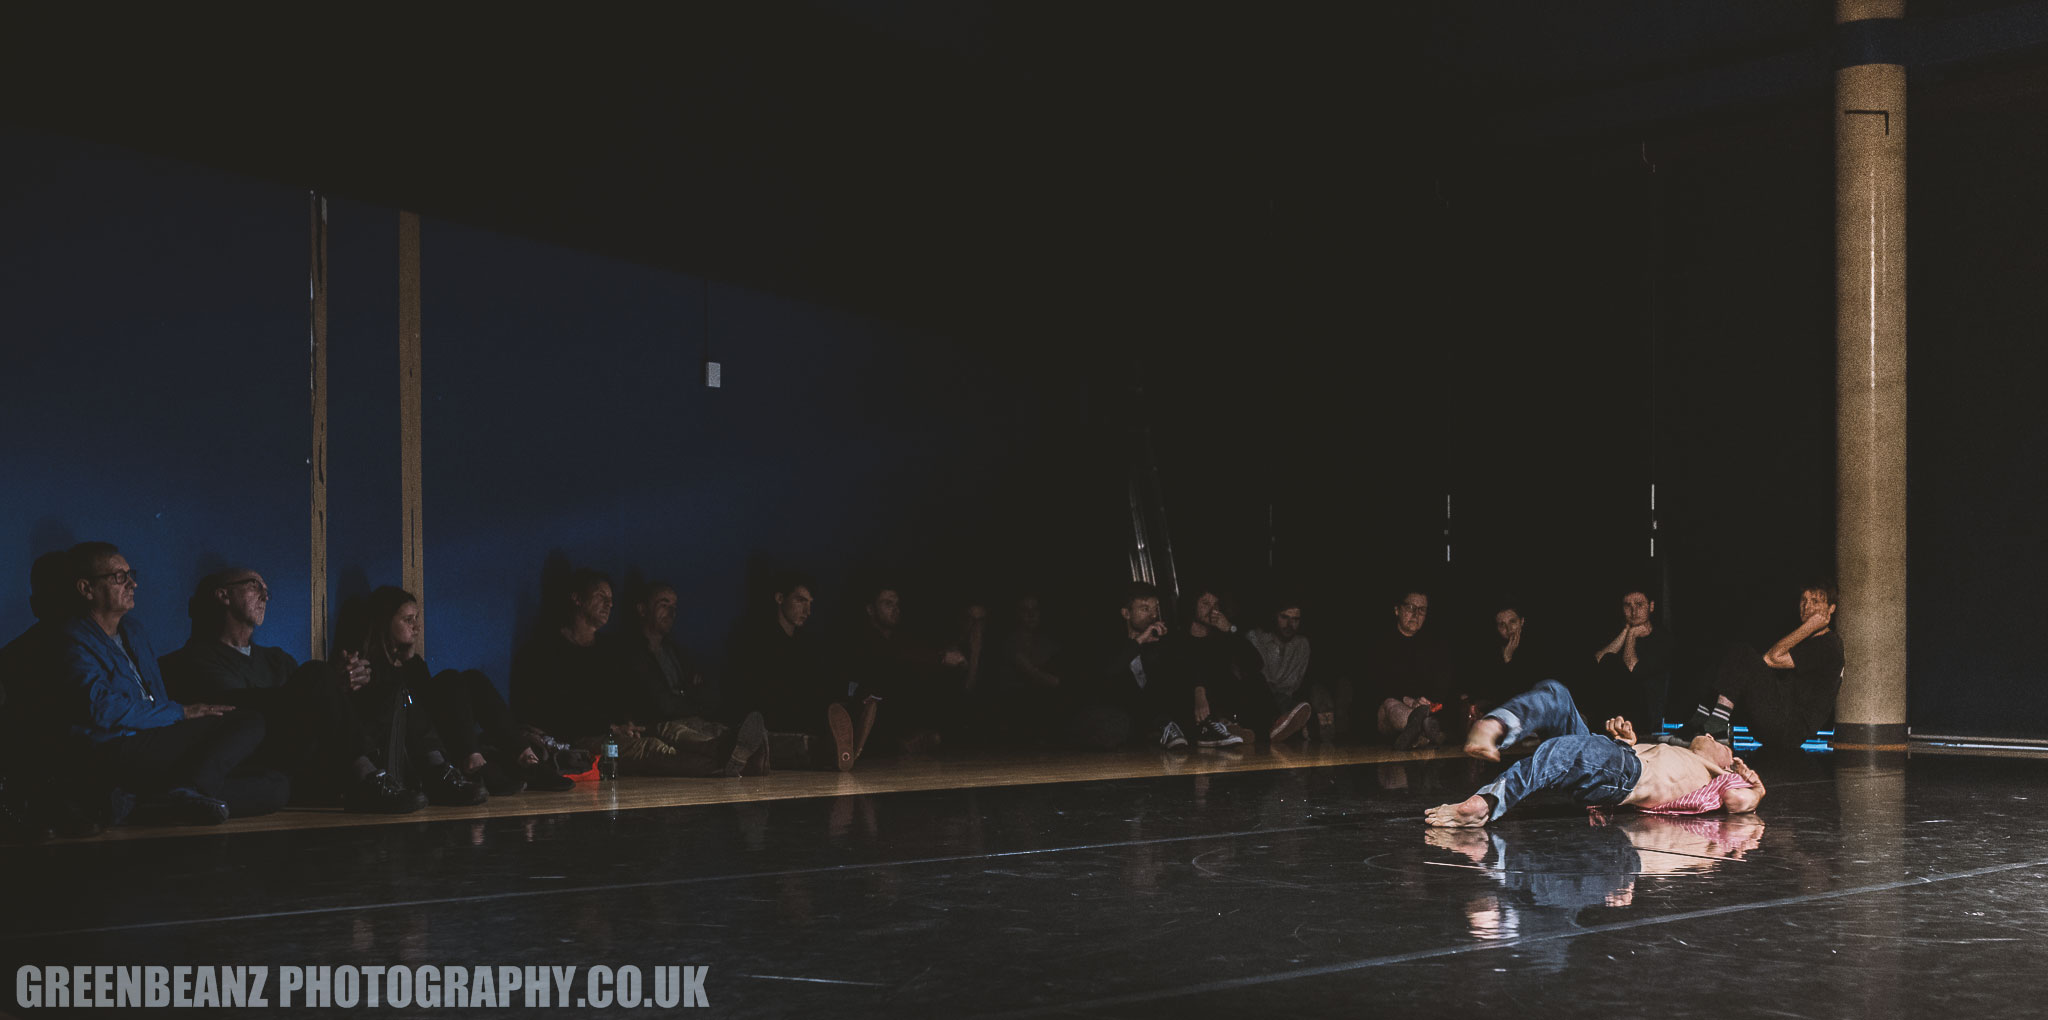 Photograph of Disabled dancer Kevin French in motion UK Dance Photography